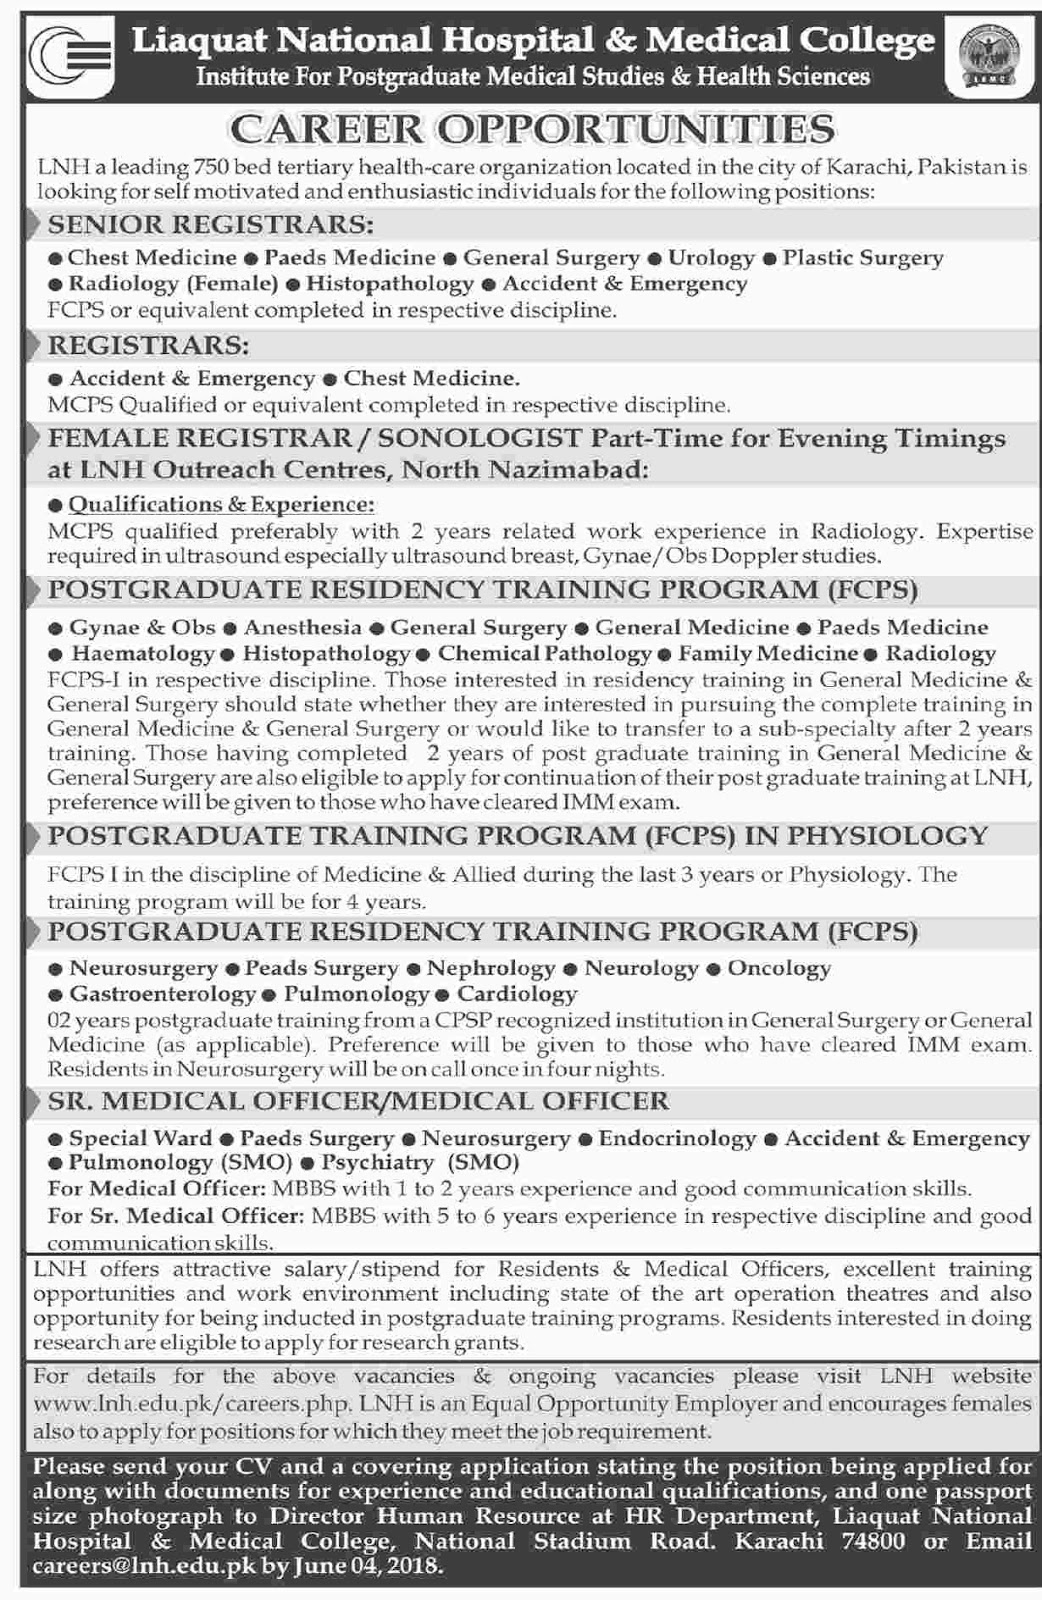 Liaquat National Hospital And Medical College Last date 04 June 2018